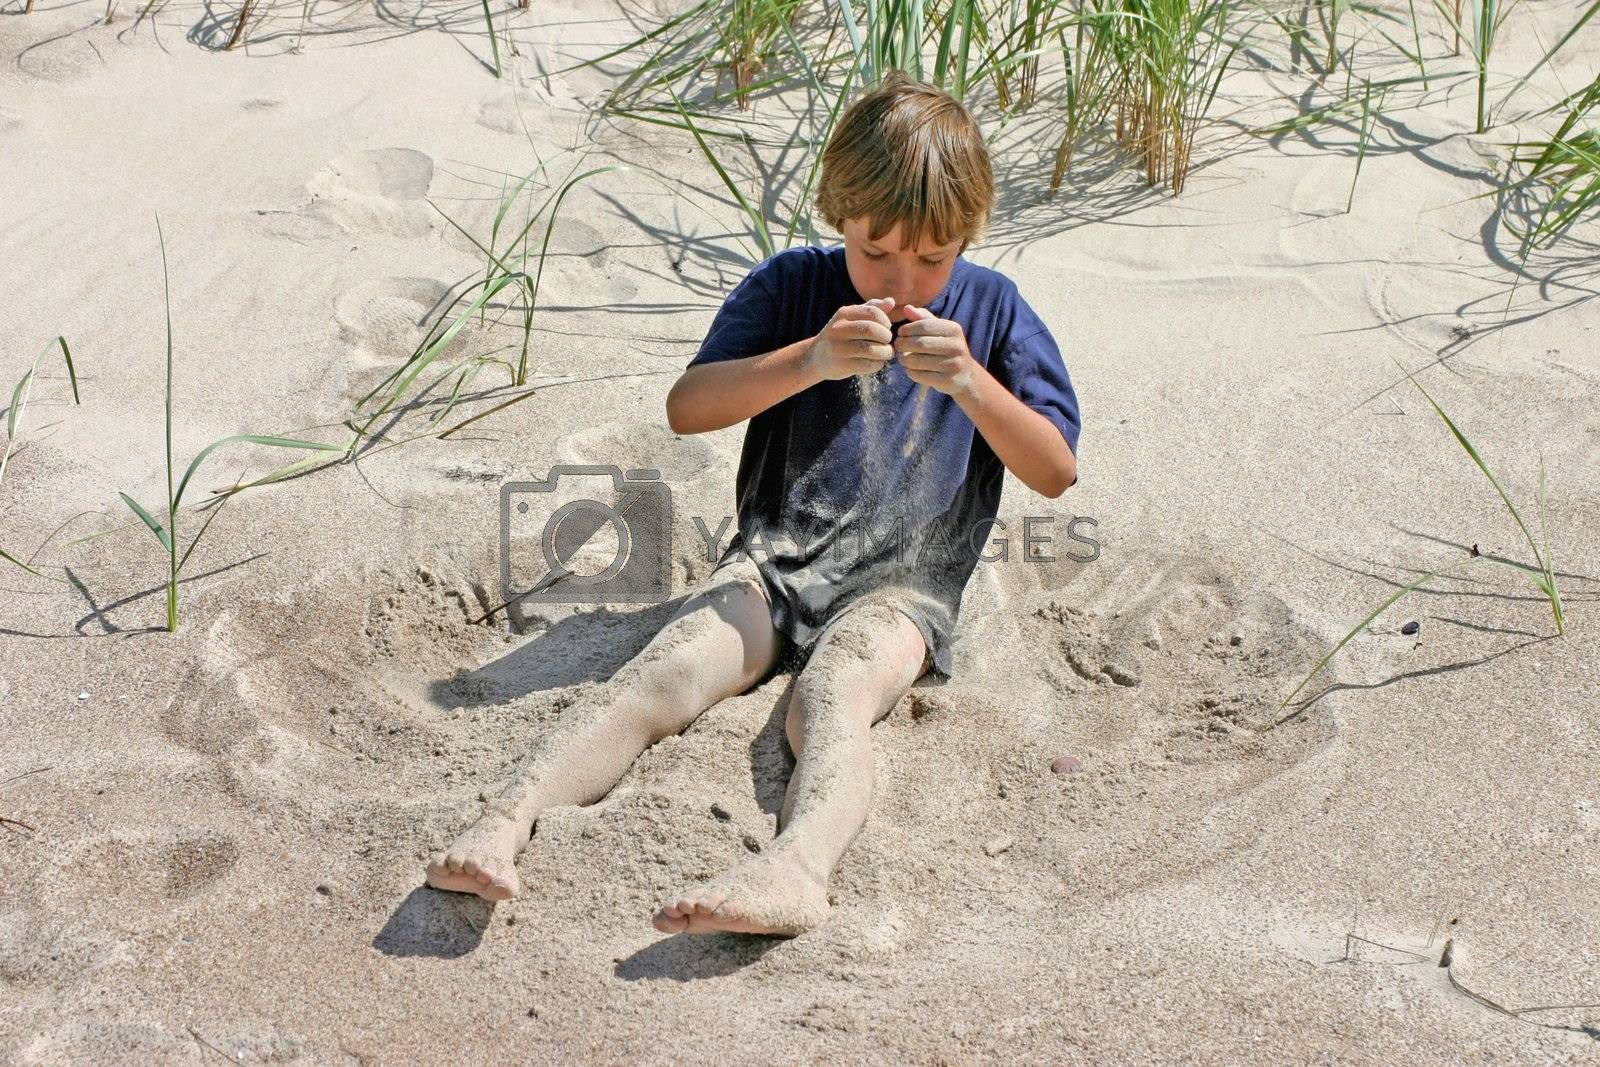 7-9 years old boy playing with sand on the beach